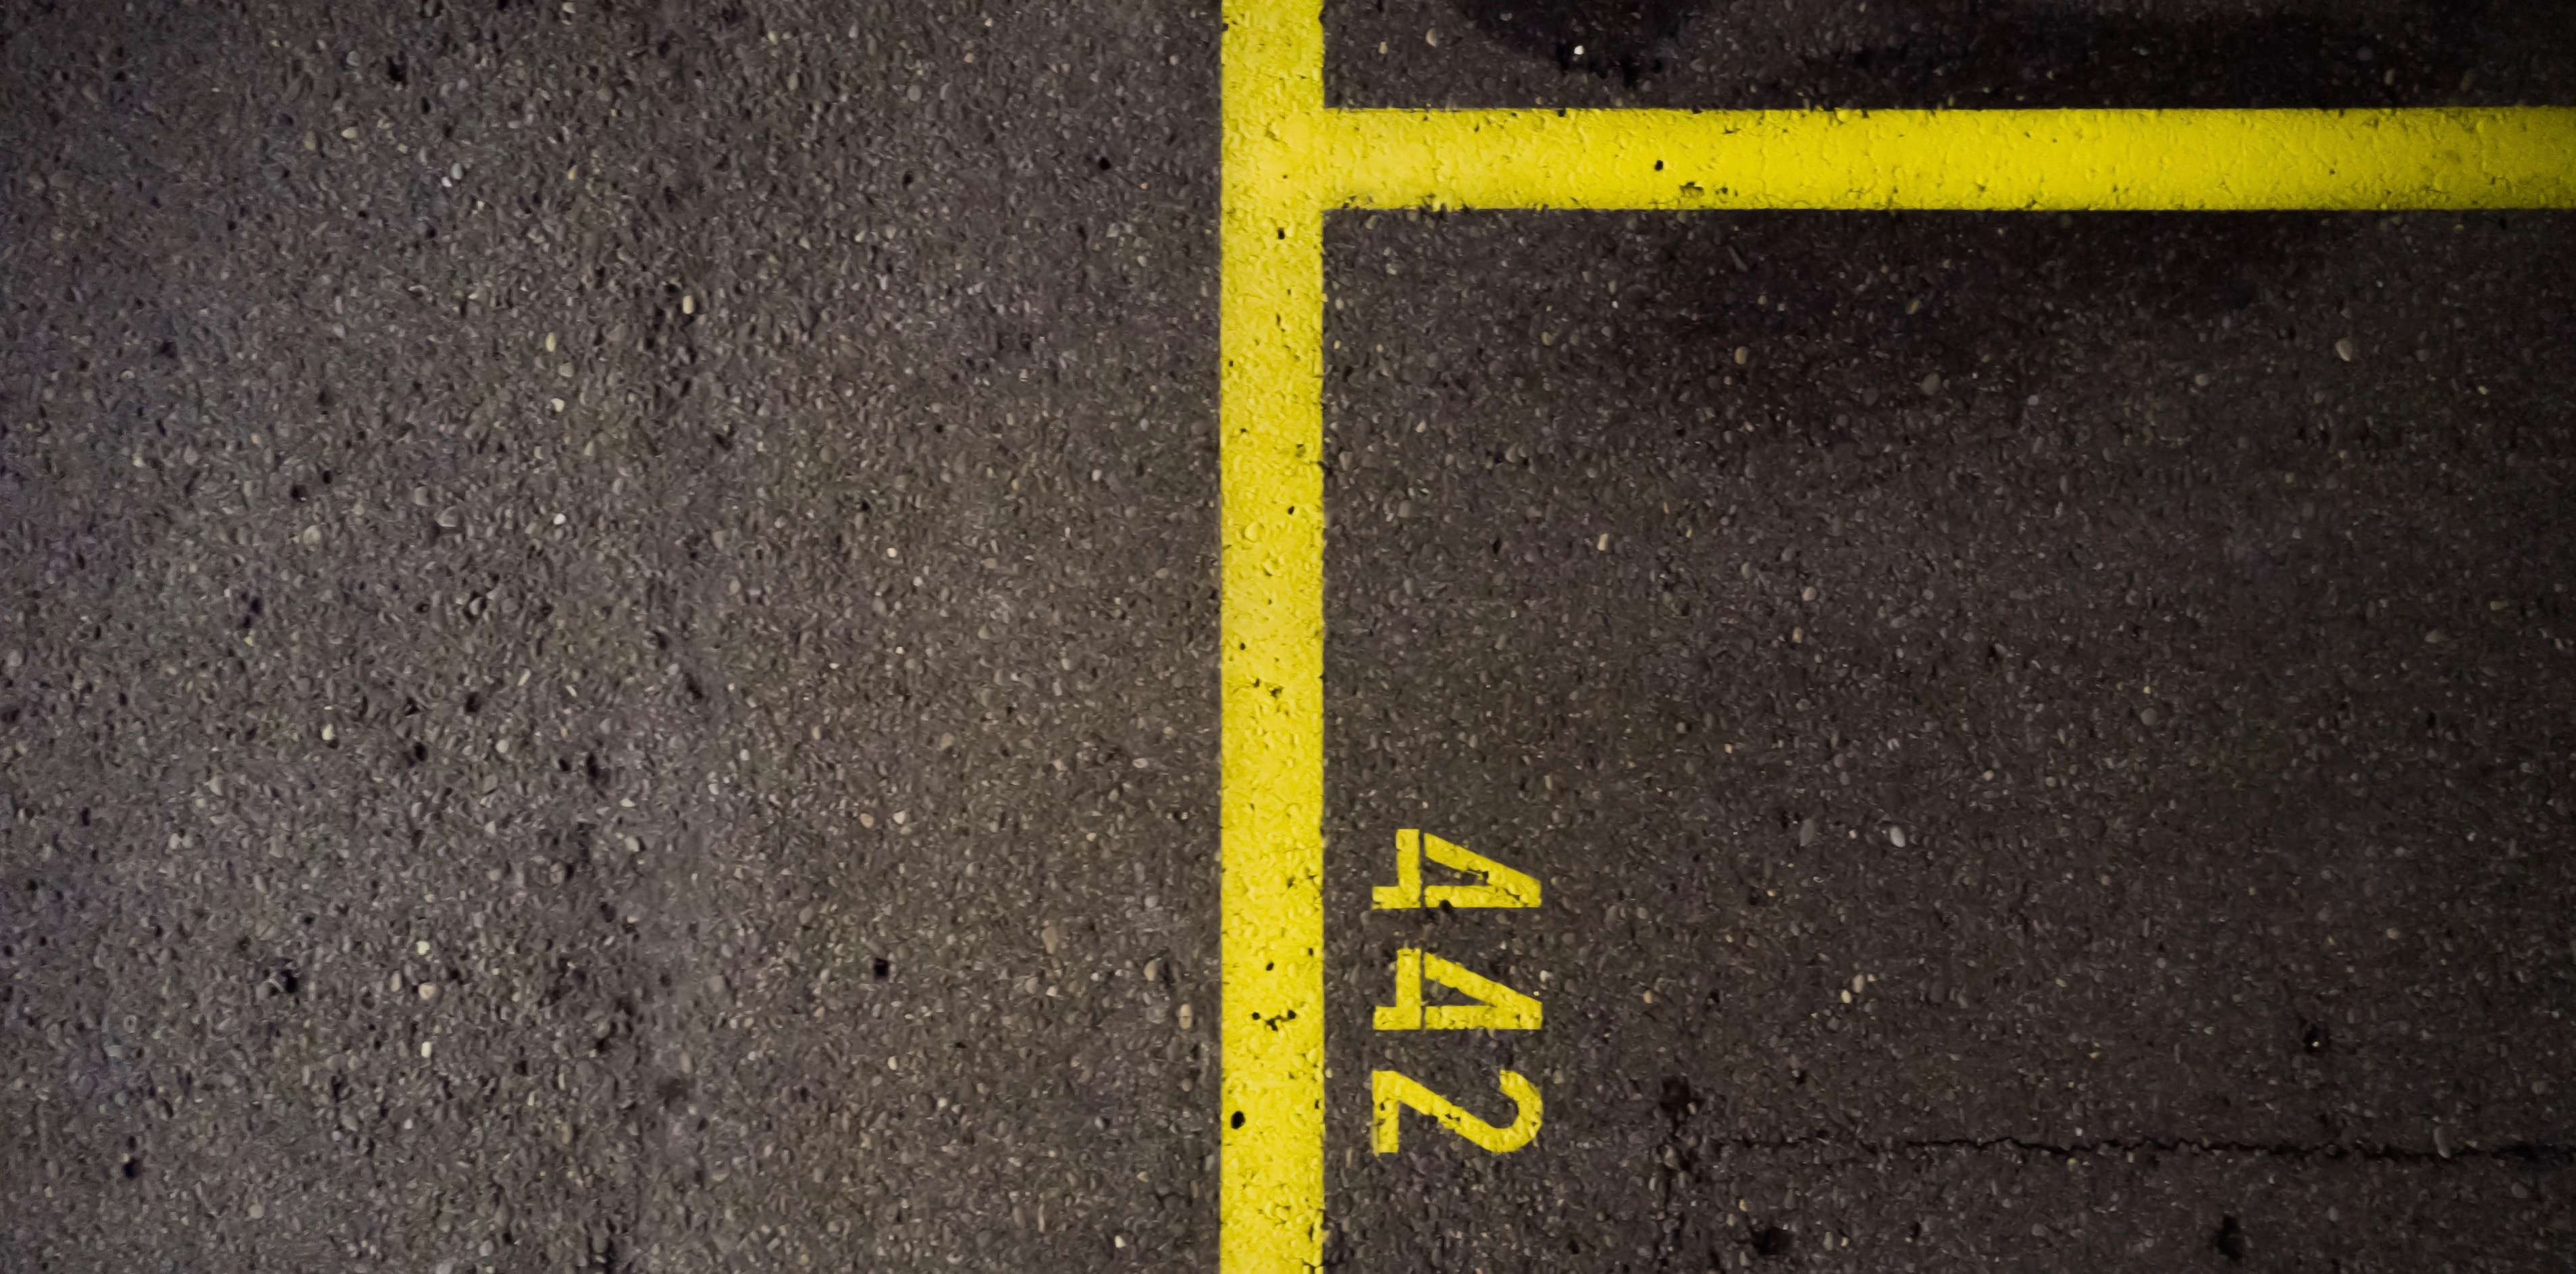 carpark with yellow lines and numbers painted on